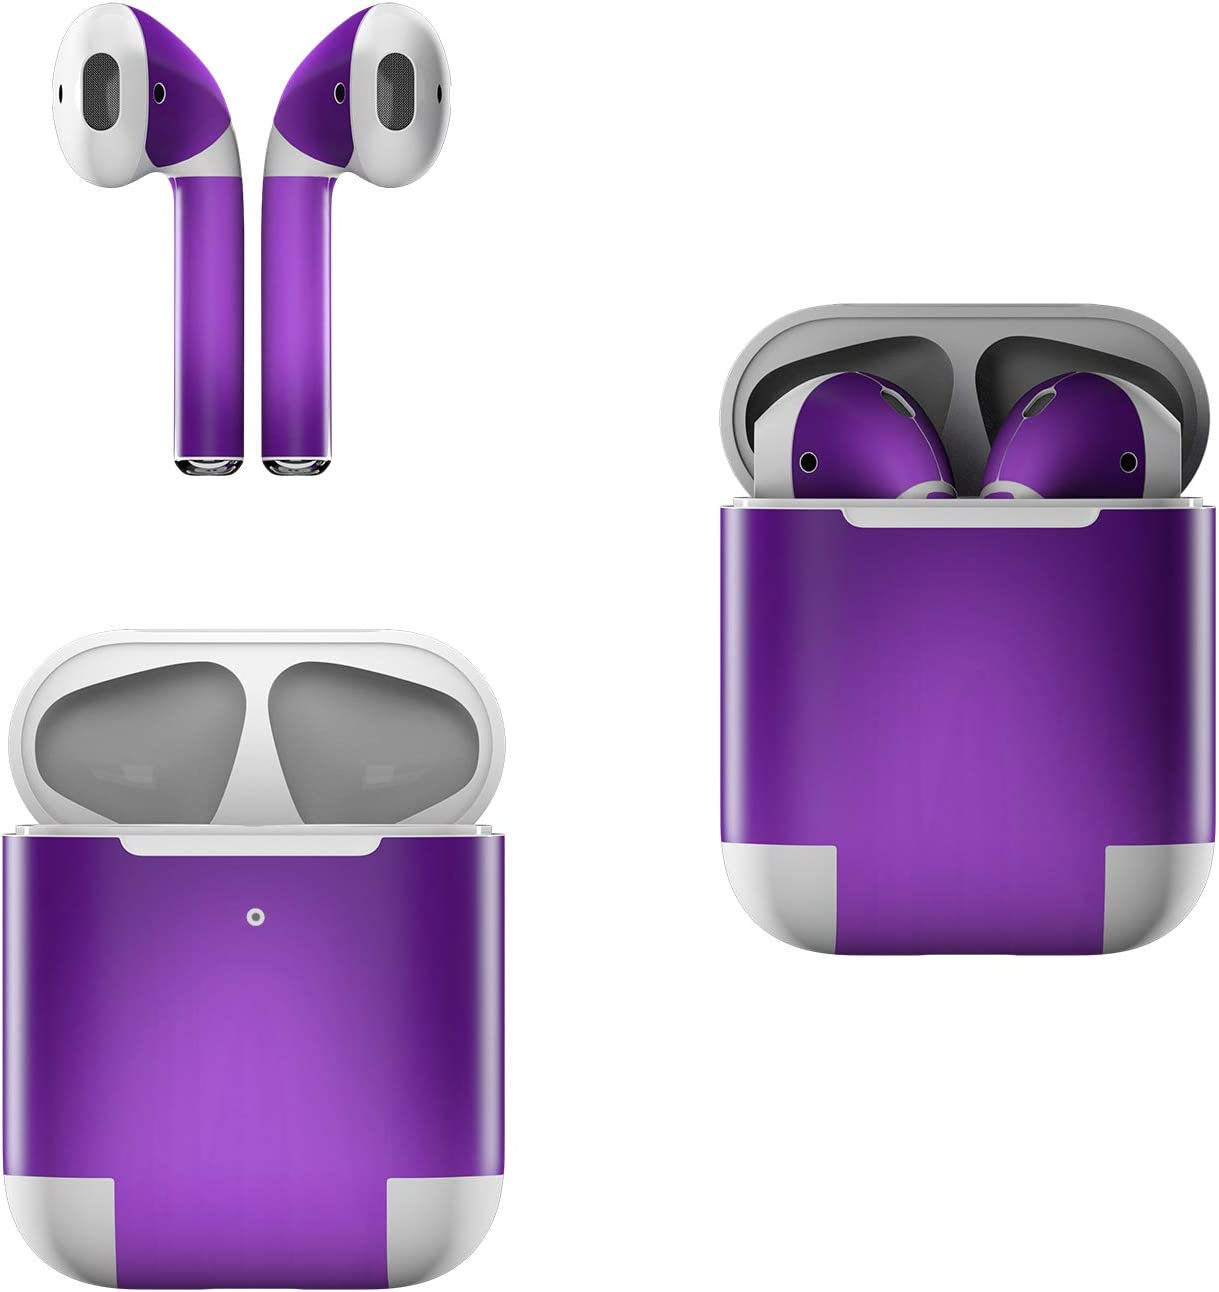 Skin Decals for Apple AirPods - Purple Burst - Sticker Wrap Fits 1st and 2nd Generation